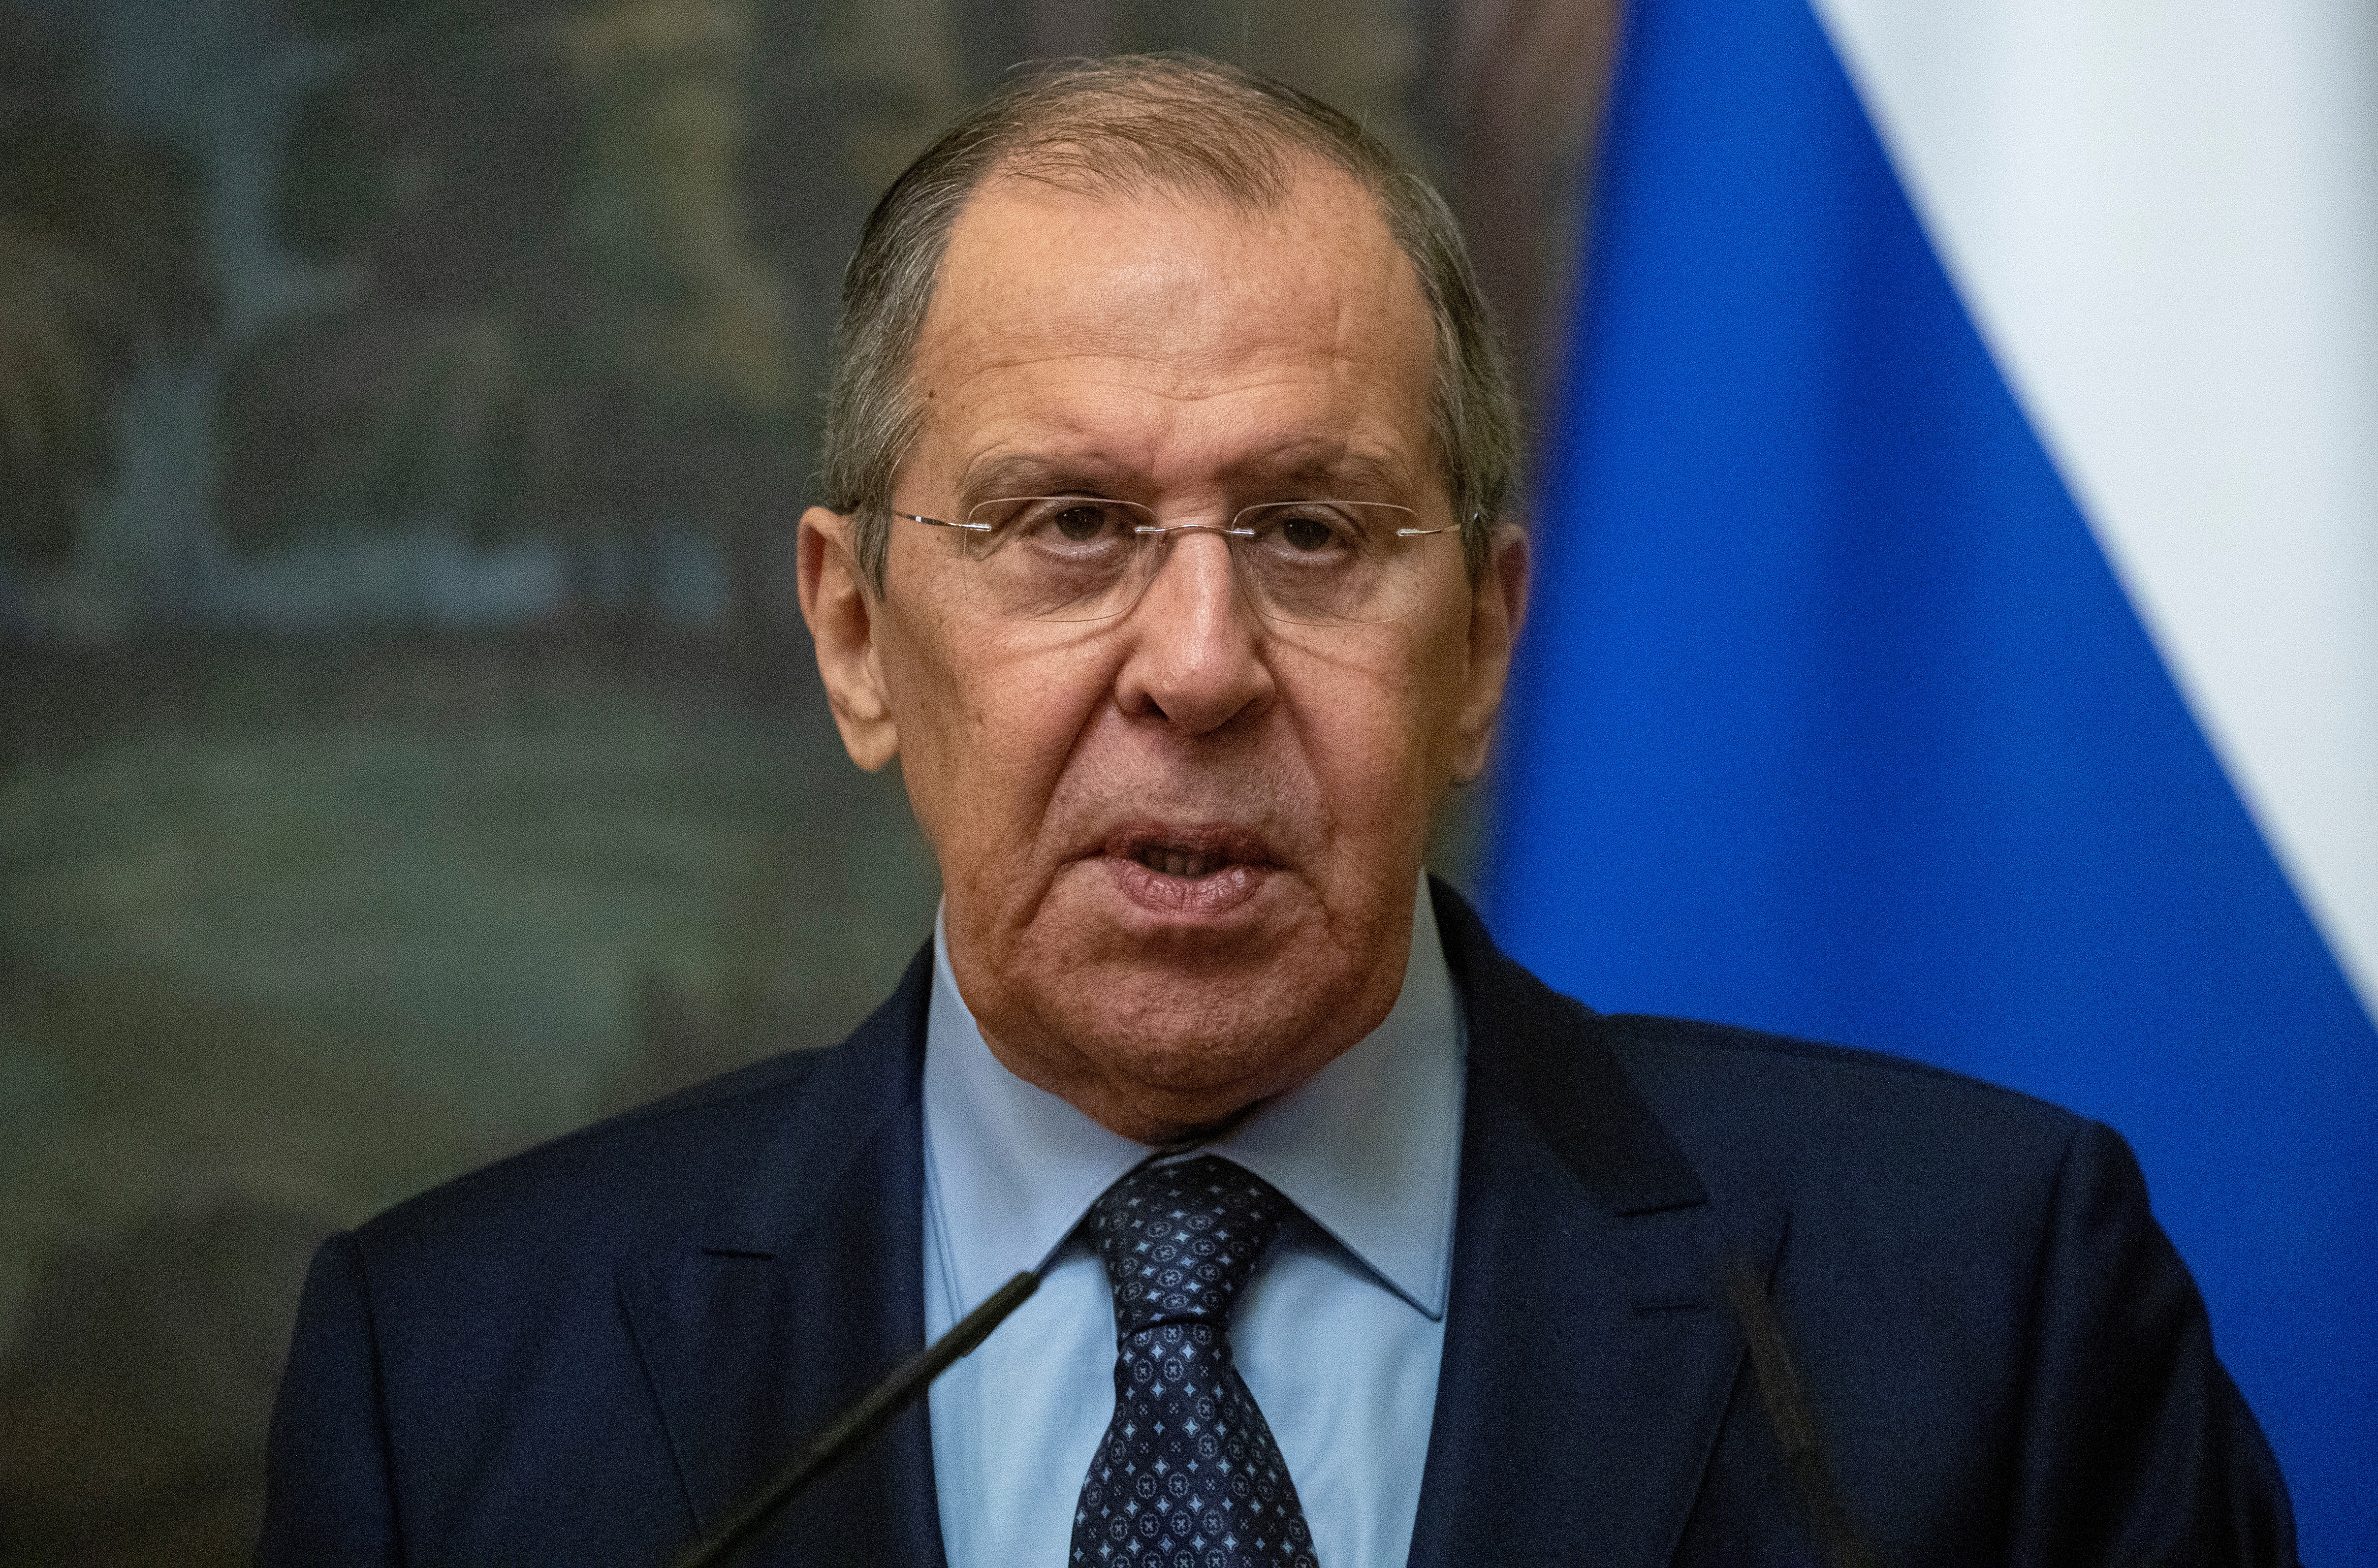 Russia's Foreign Minister Sergei Lavrov attends a news conference following talks with San Marino's Foreign Minister Luca Beccari in Moscow, Russia, September 13, 2021. Sergei Ilnitsky/Pool via REUTERS/File Photo